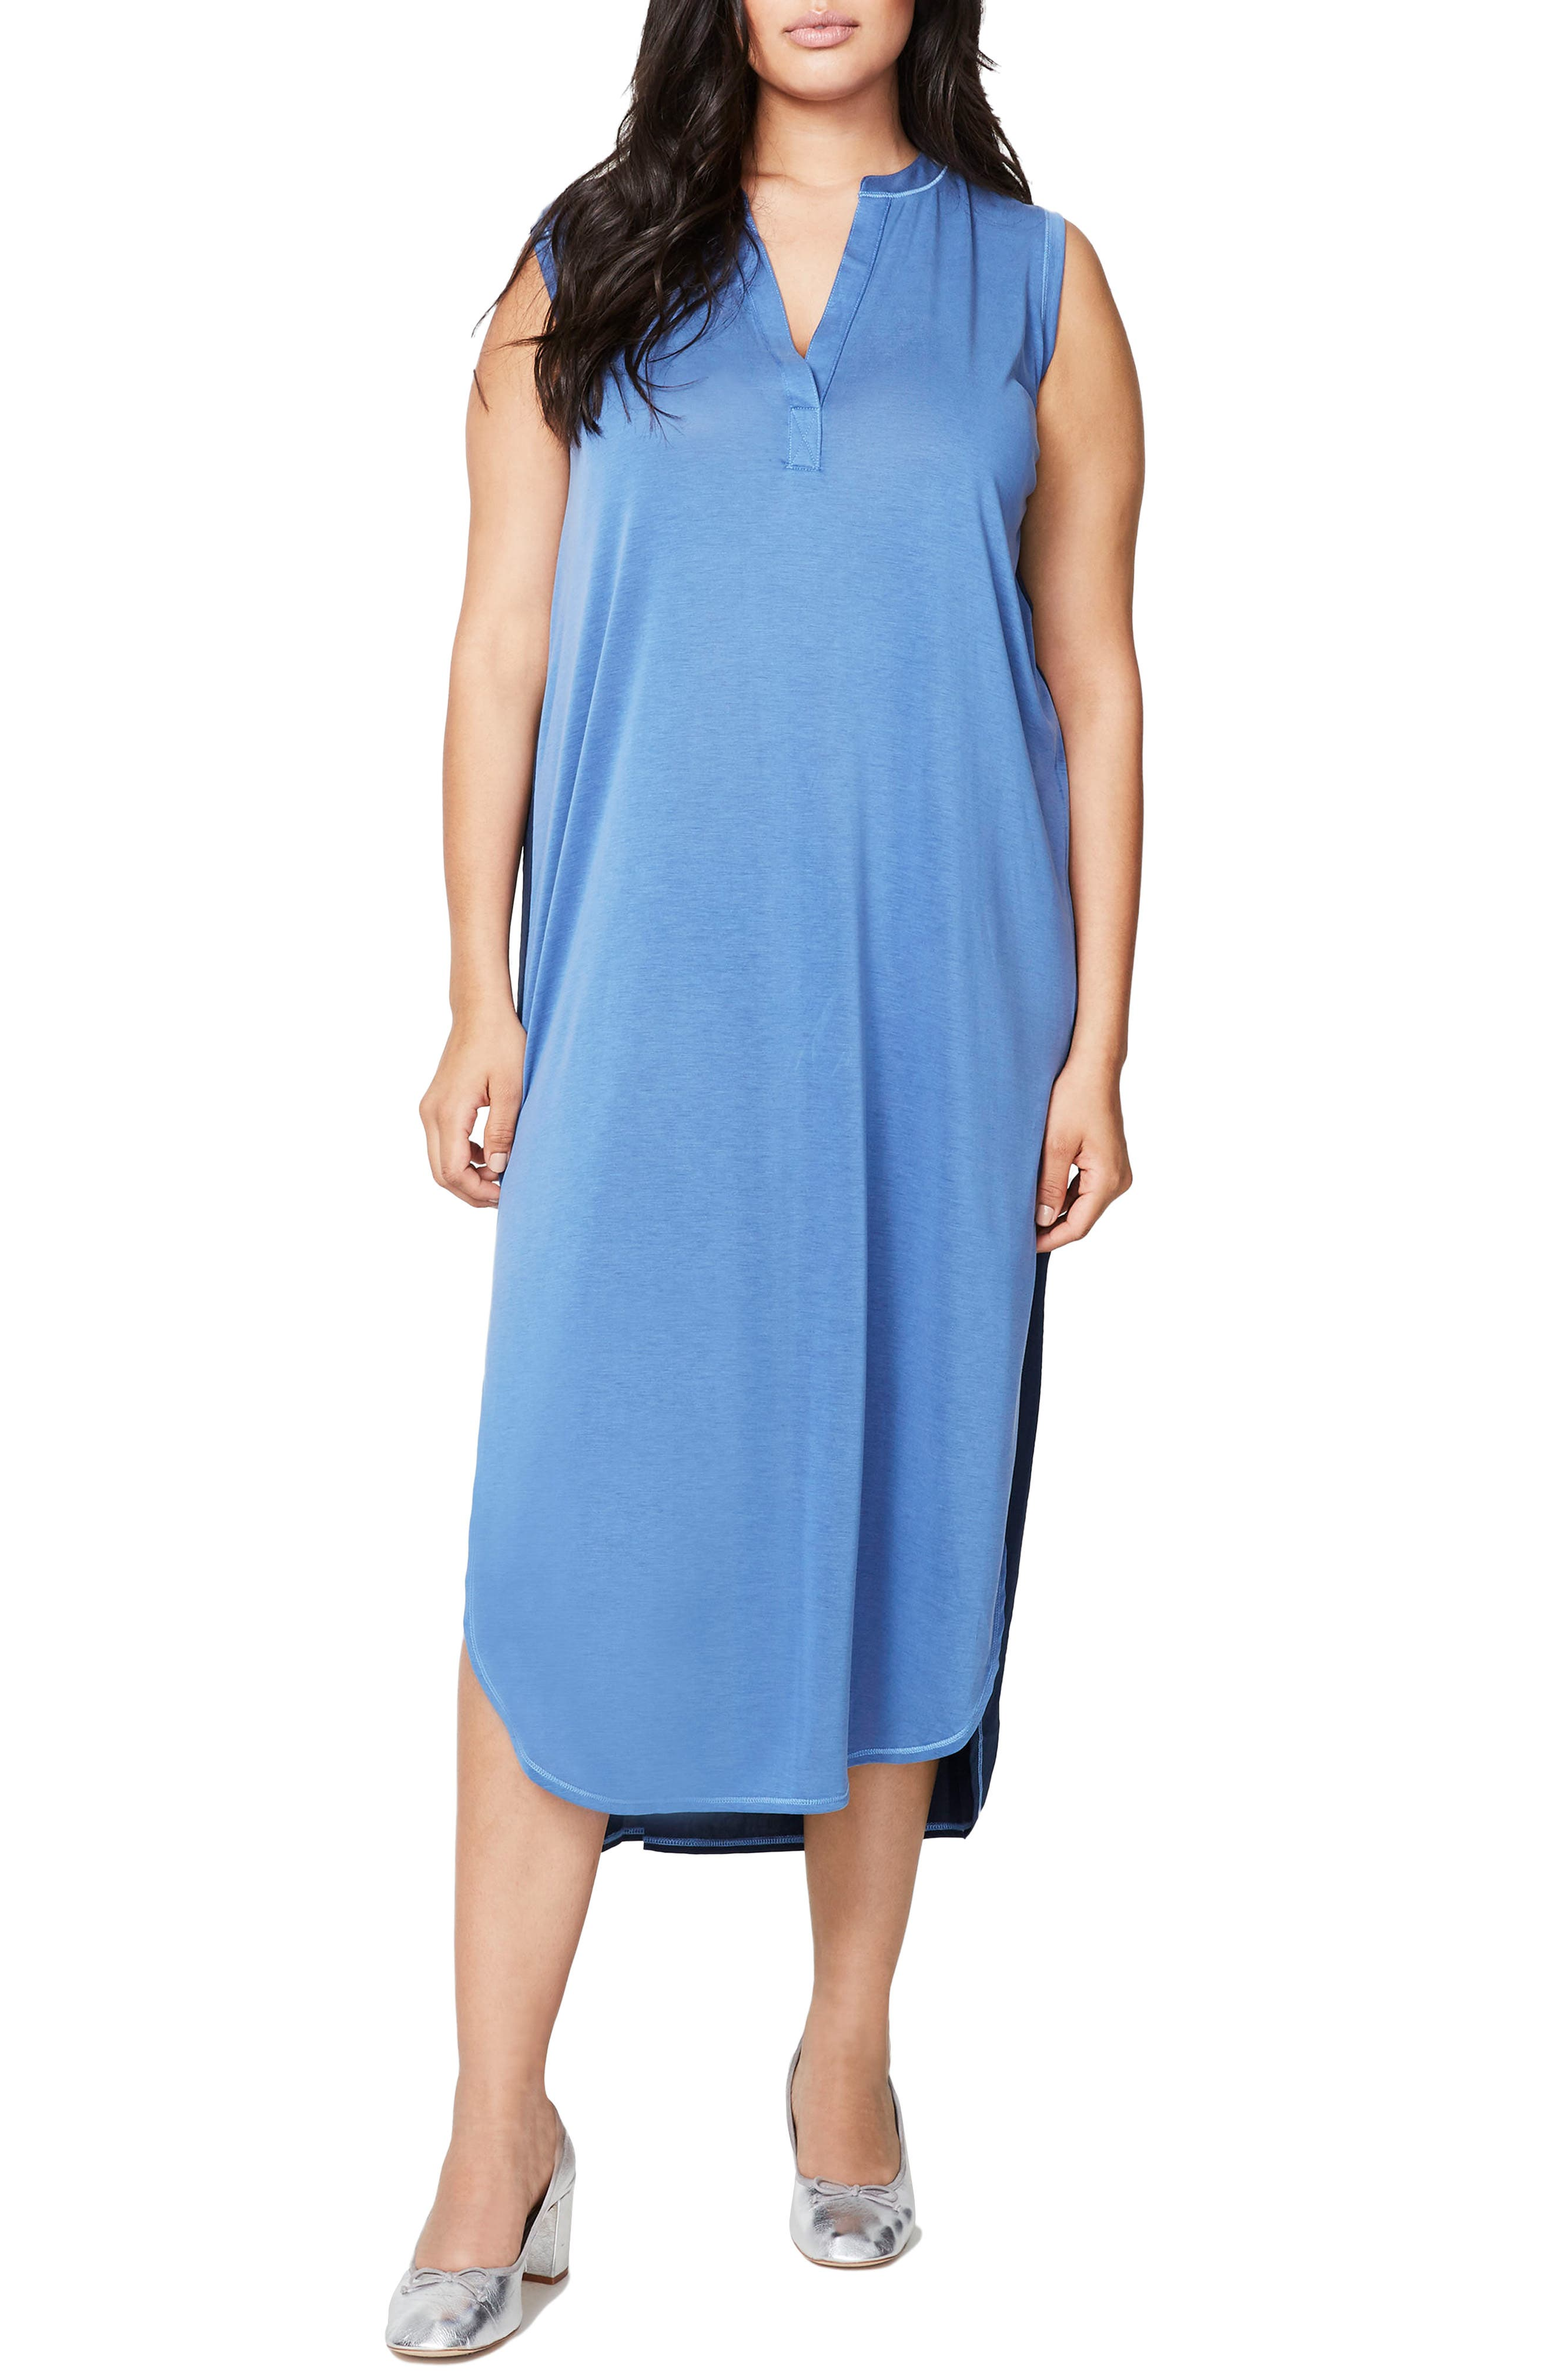 Alternate Image 1 Selected - Rachel Roy Mixed Media Midi Shift Dress (Plus Size)